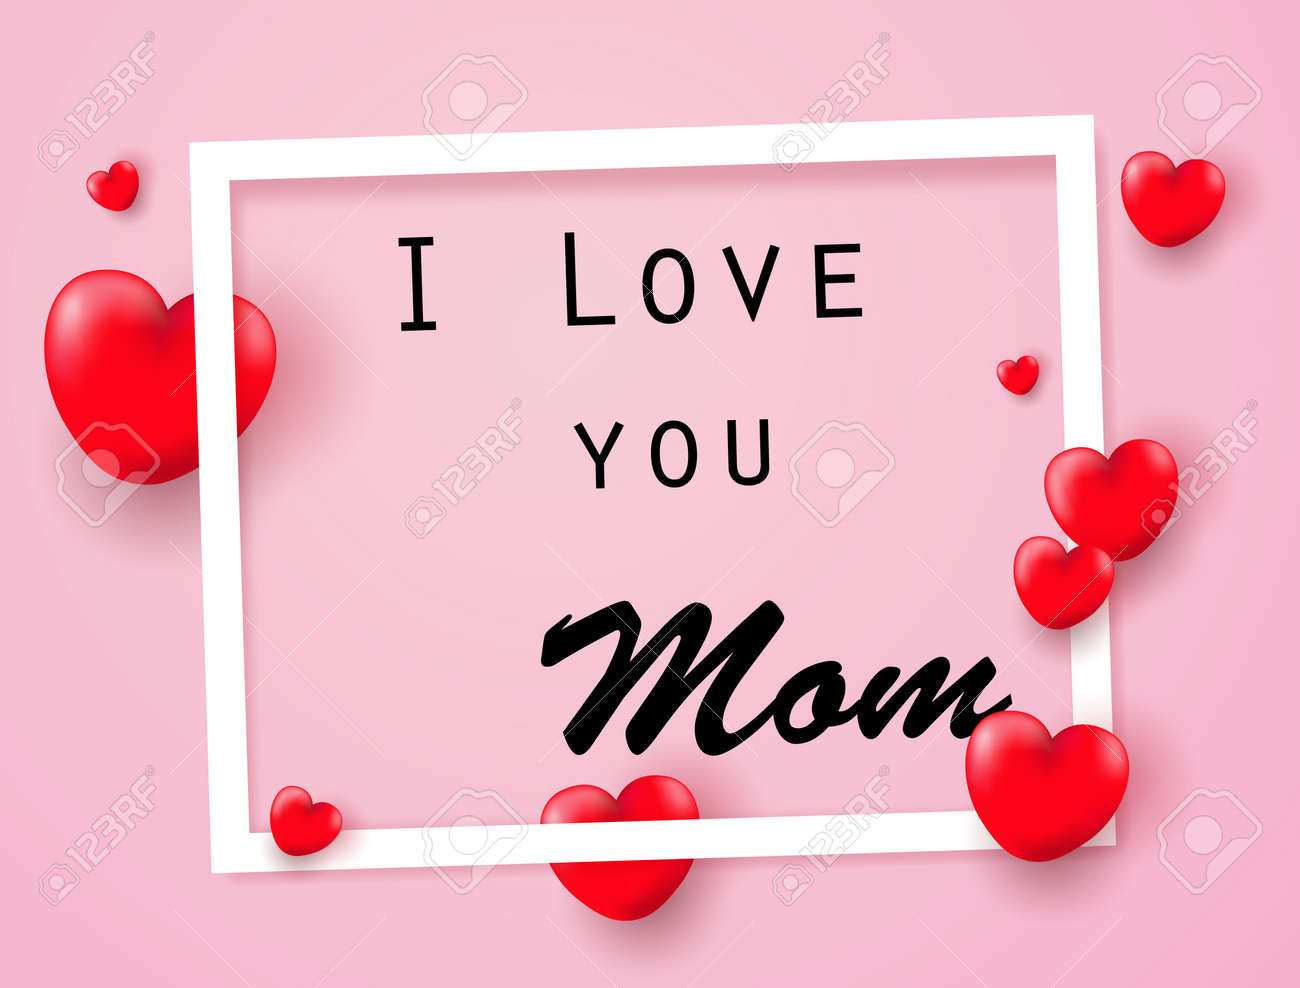 I Love You Mom With Heart Royalty Free Cliparts Vectors And Stock